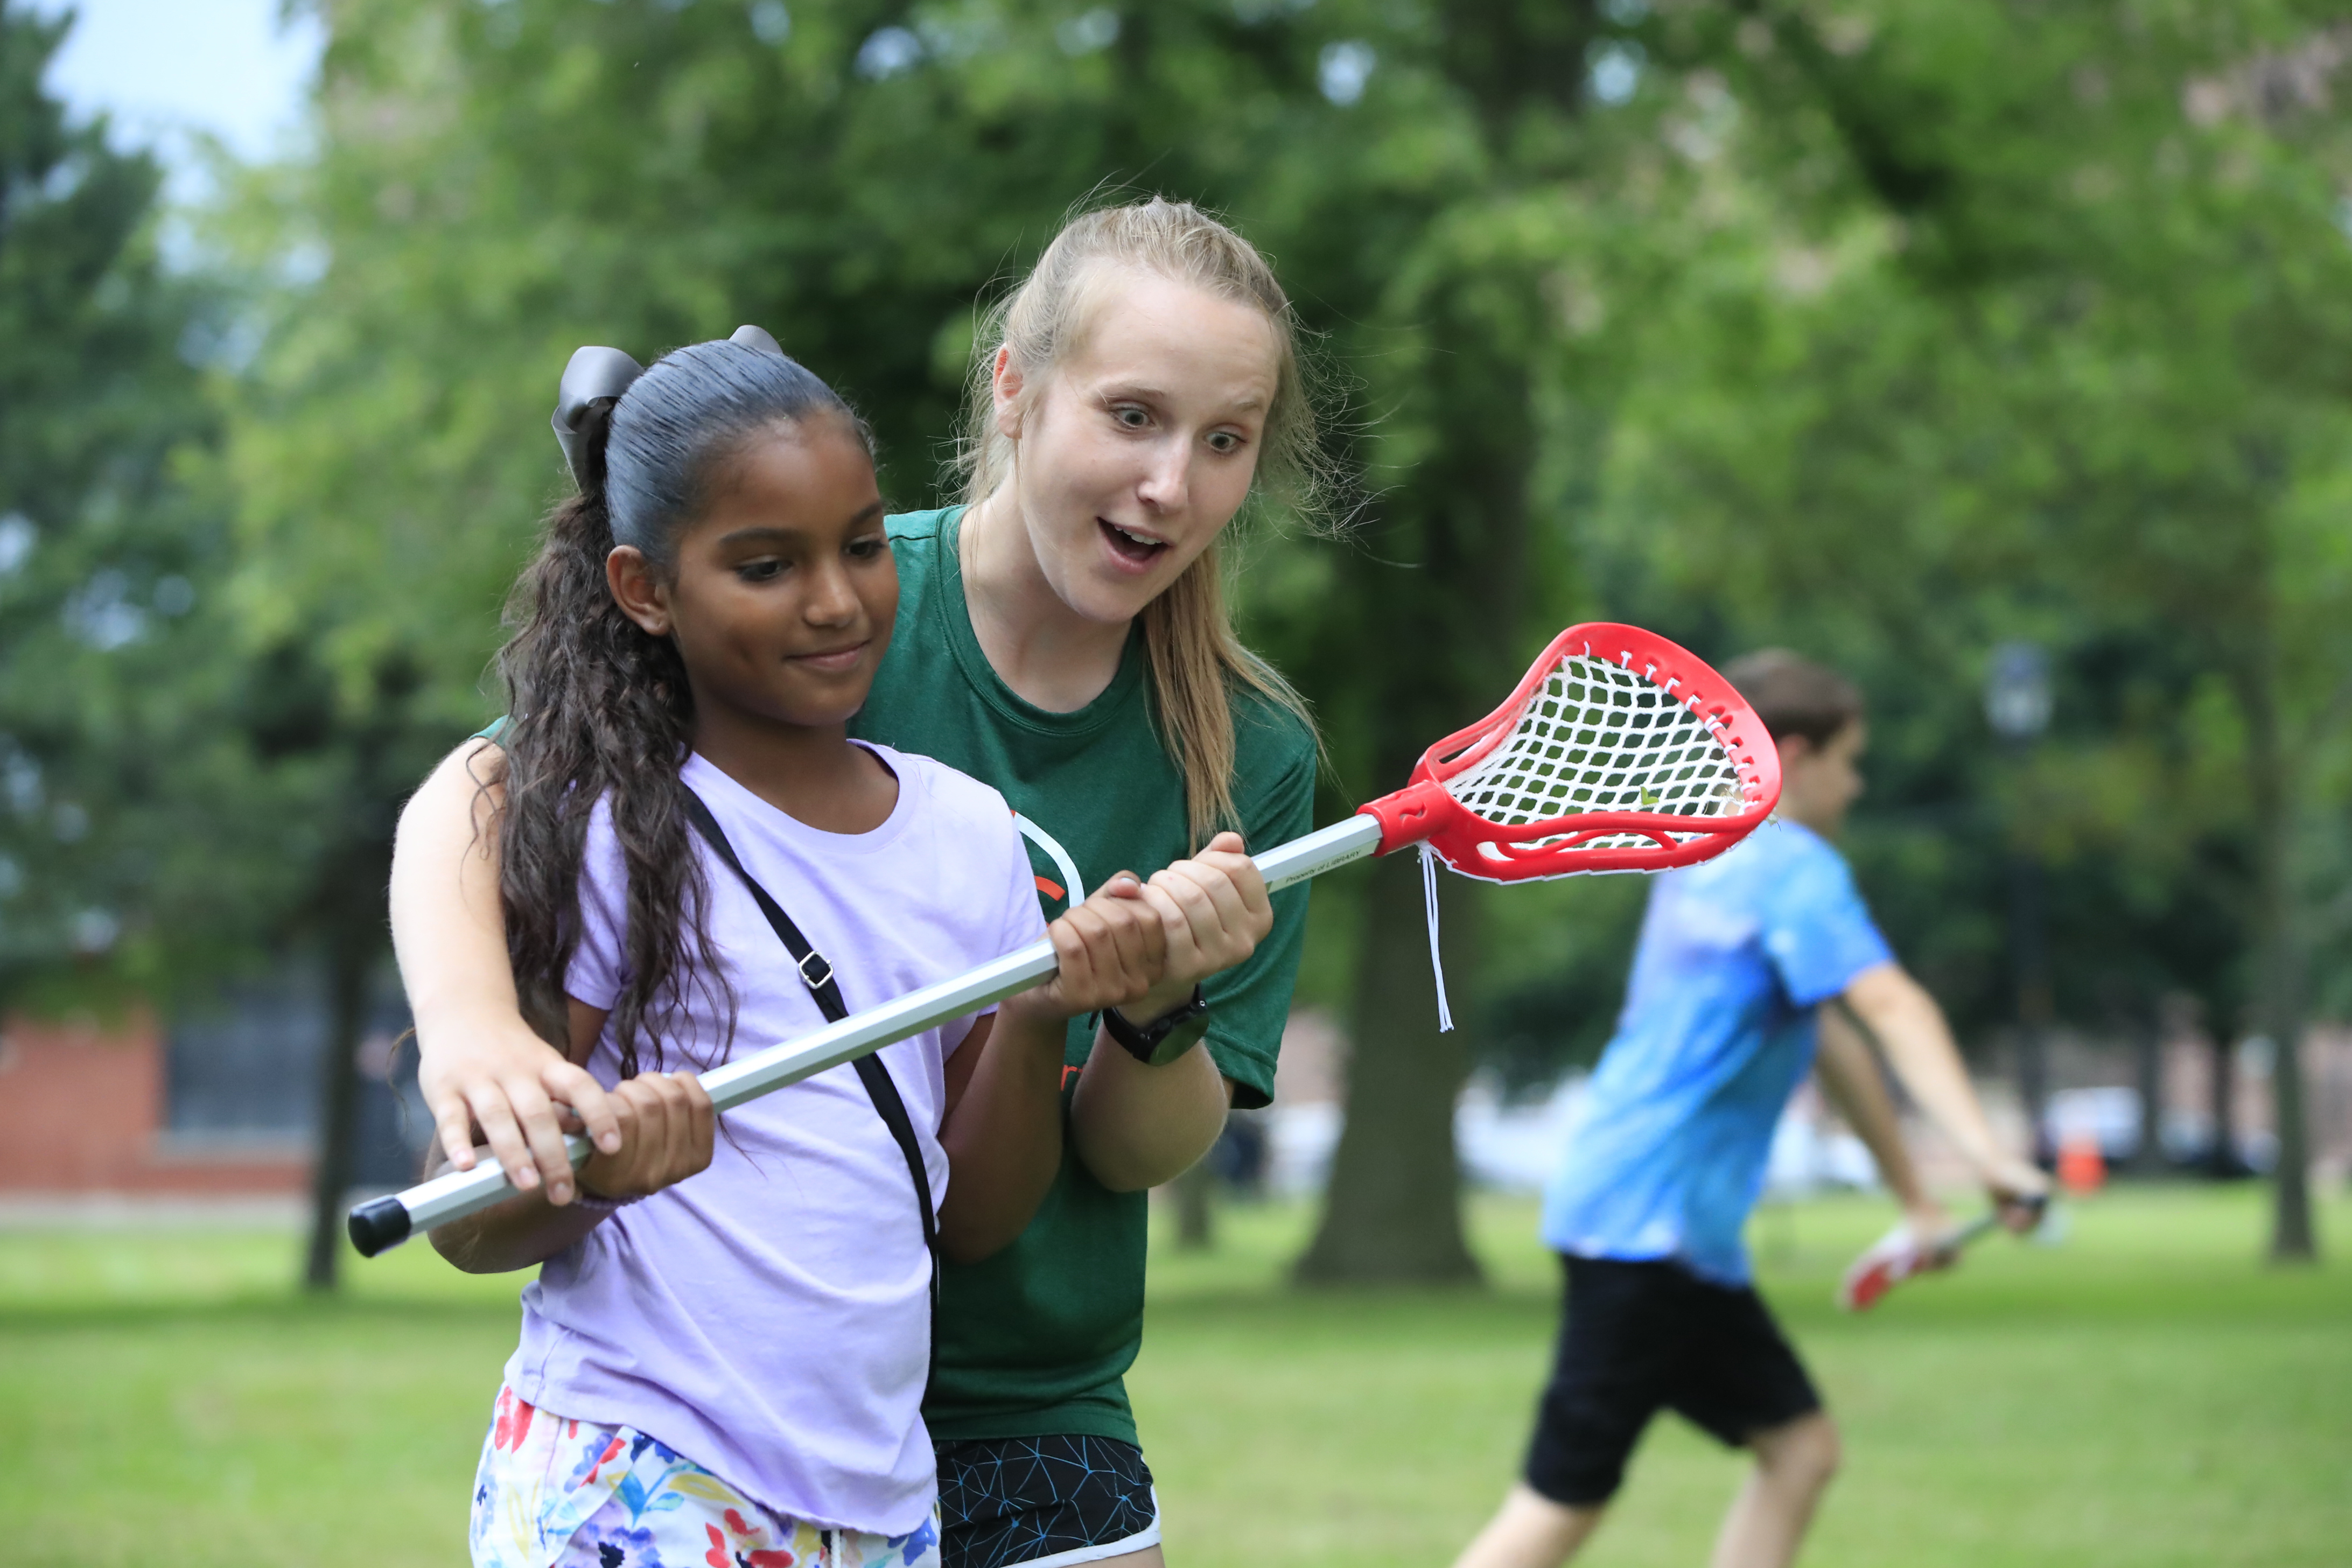 Along with books, West Side library lends lacrosse sticks and soccer